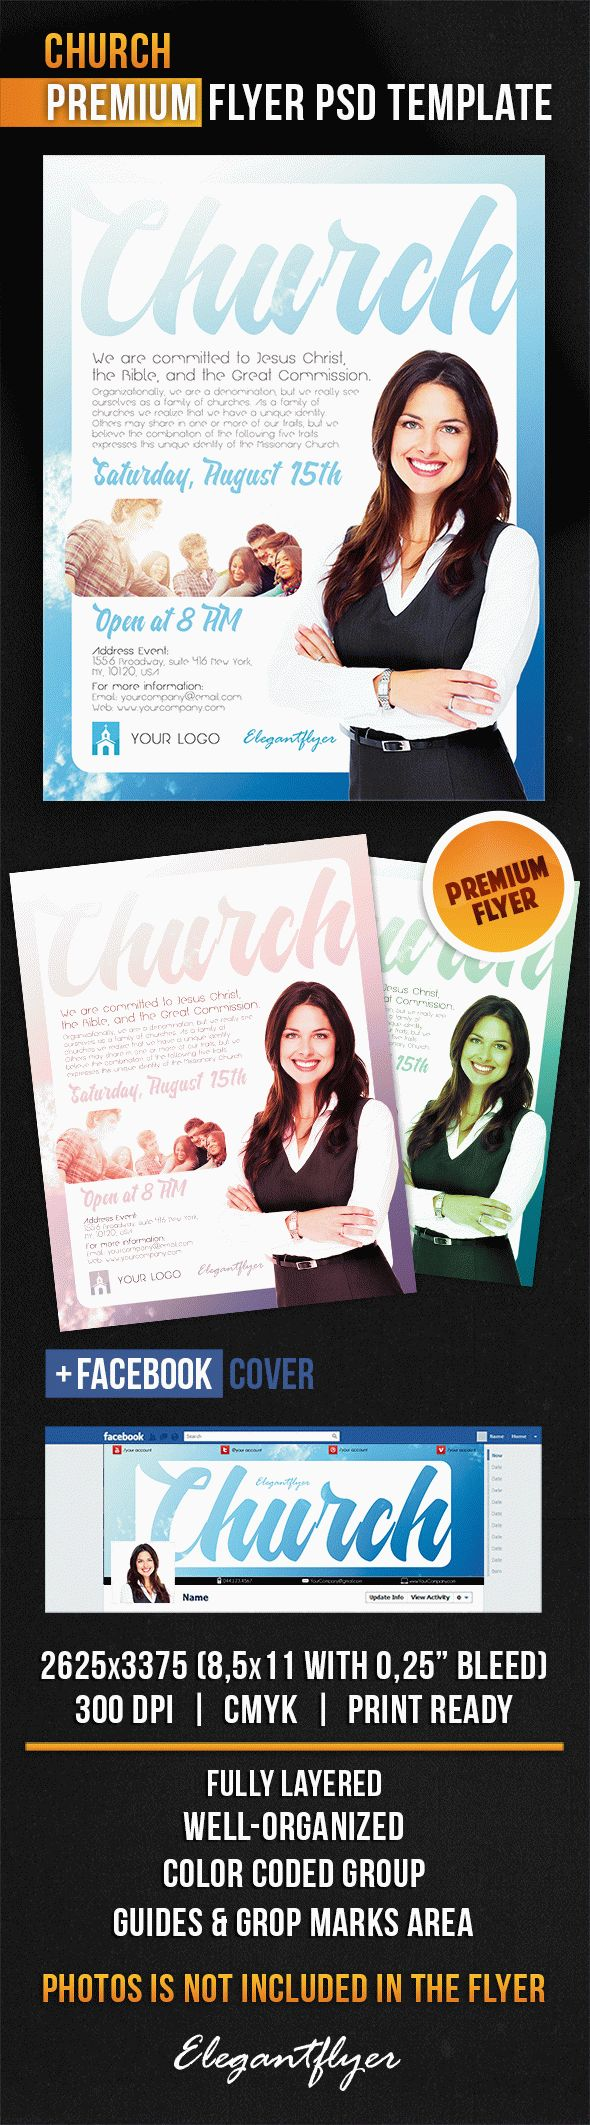 church flyer psd template facebook cover by elegantflyer church flyer psd template facebook cover